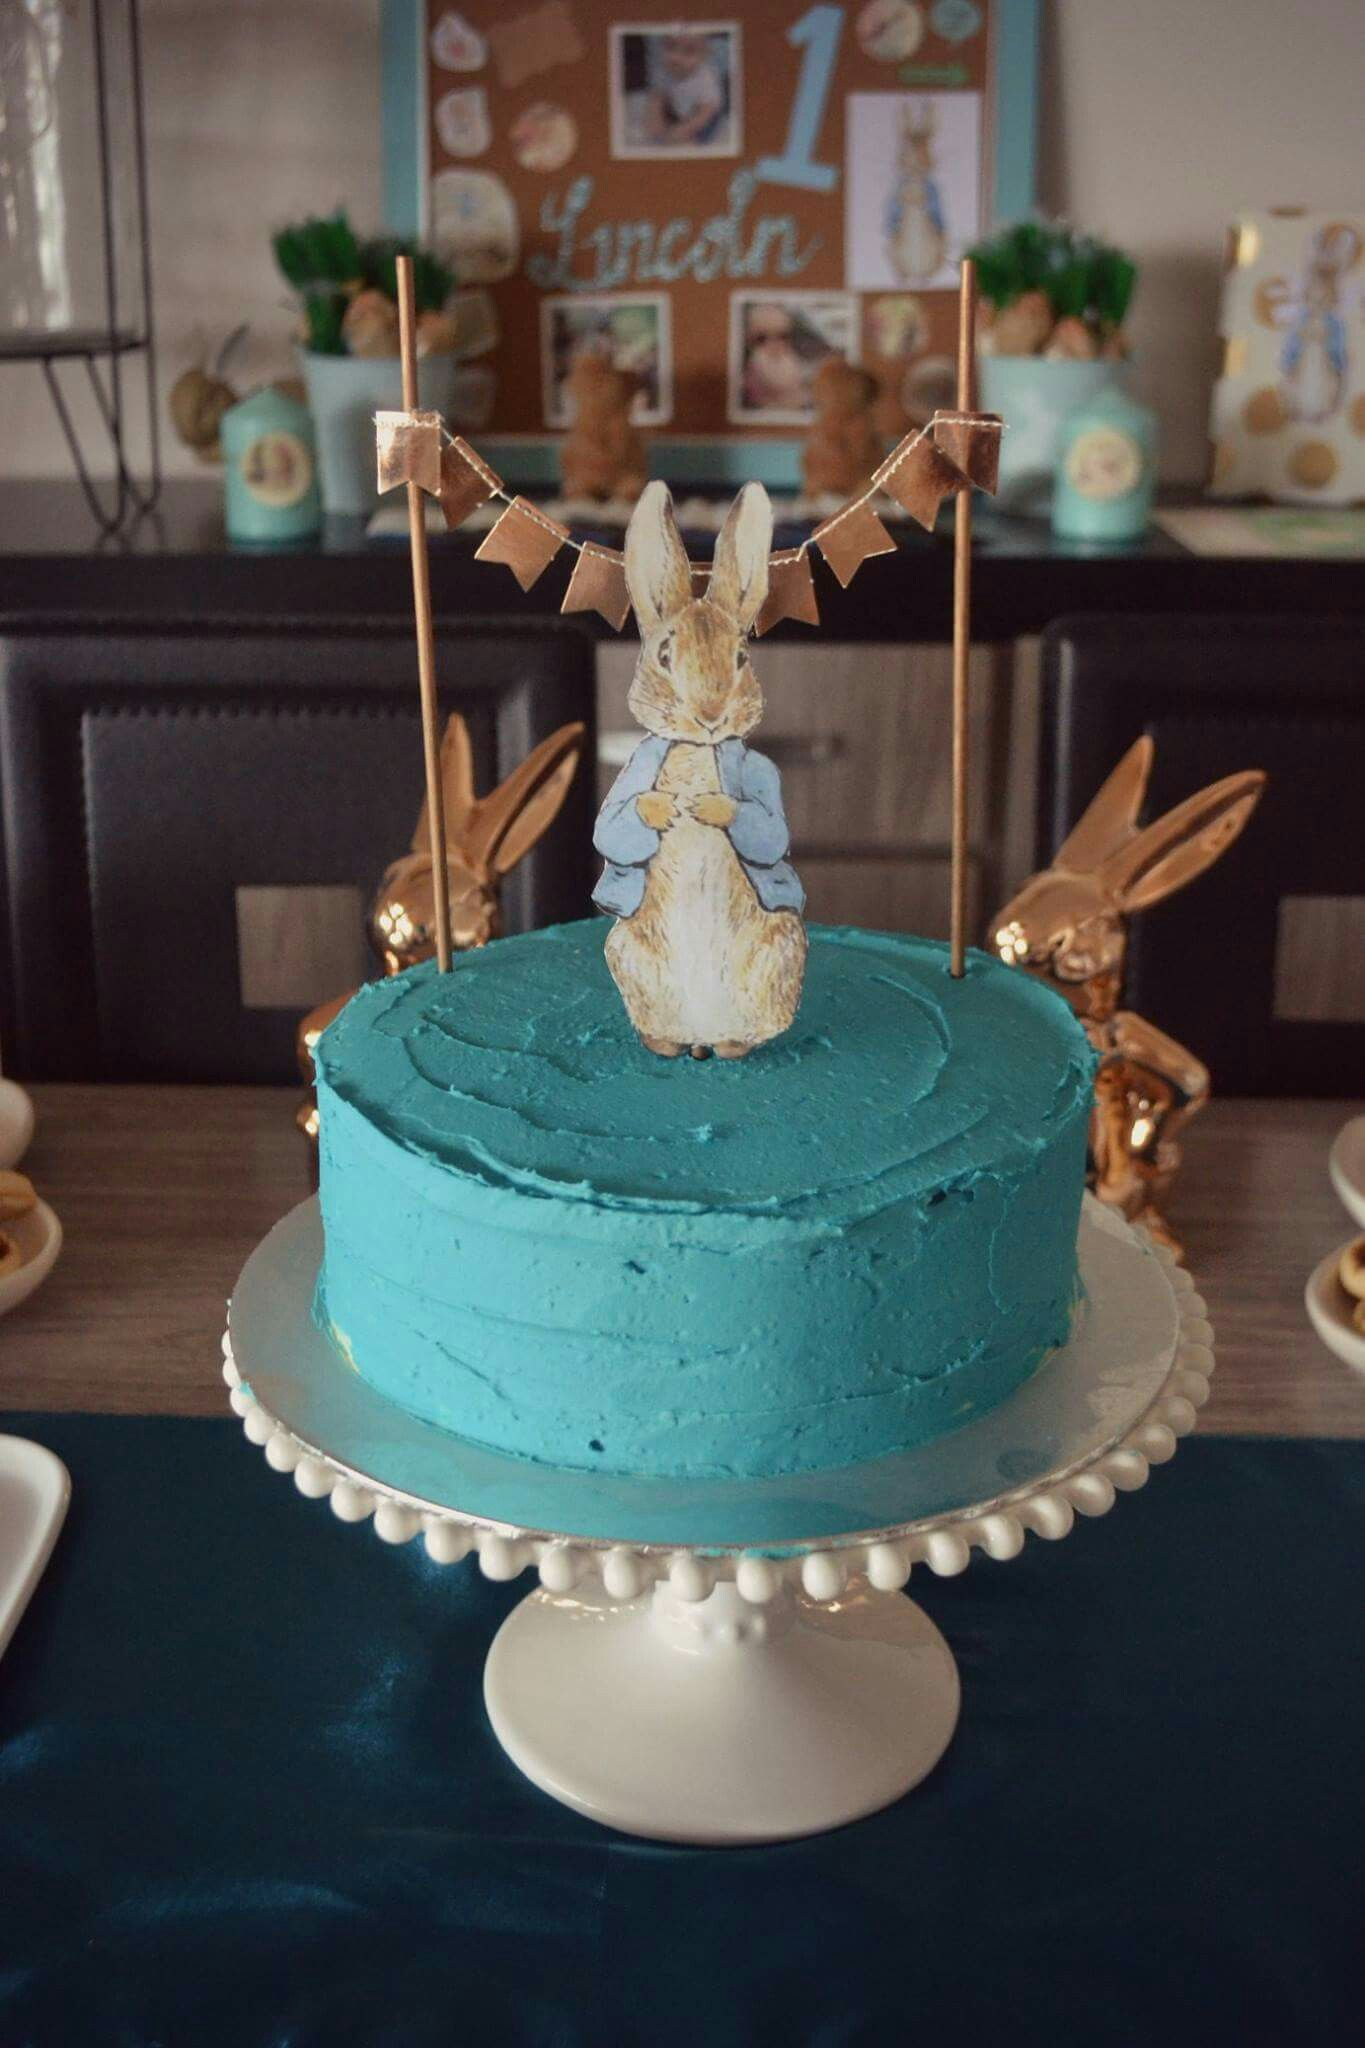 Peter Rabbit Cake Orange And Poppyseed With Blue Wilton Sky Blue